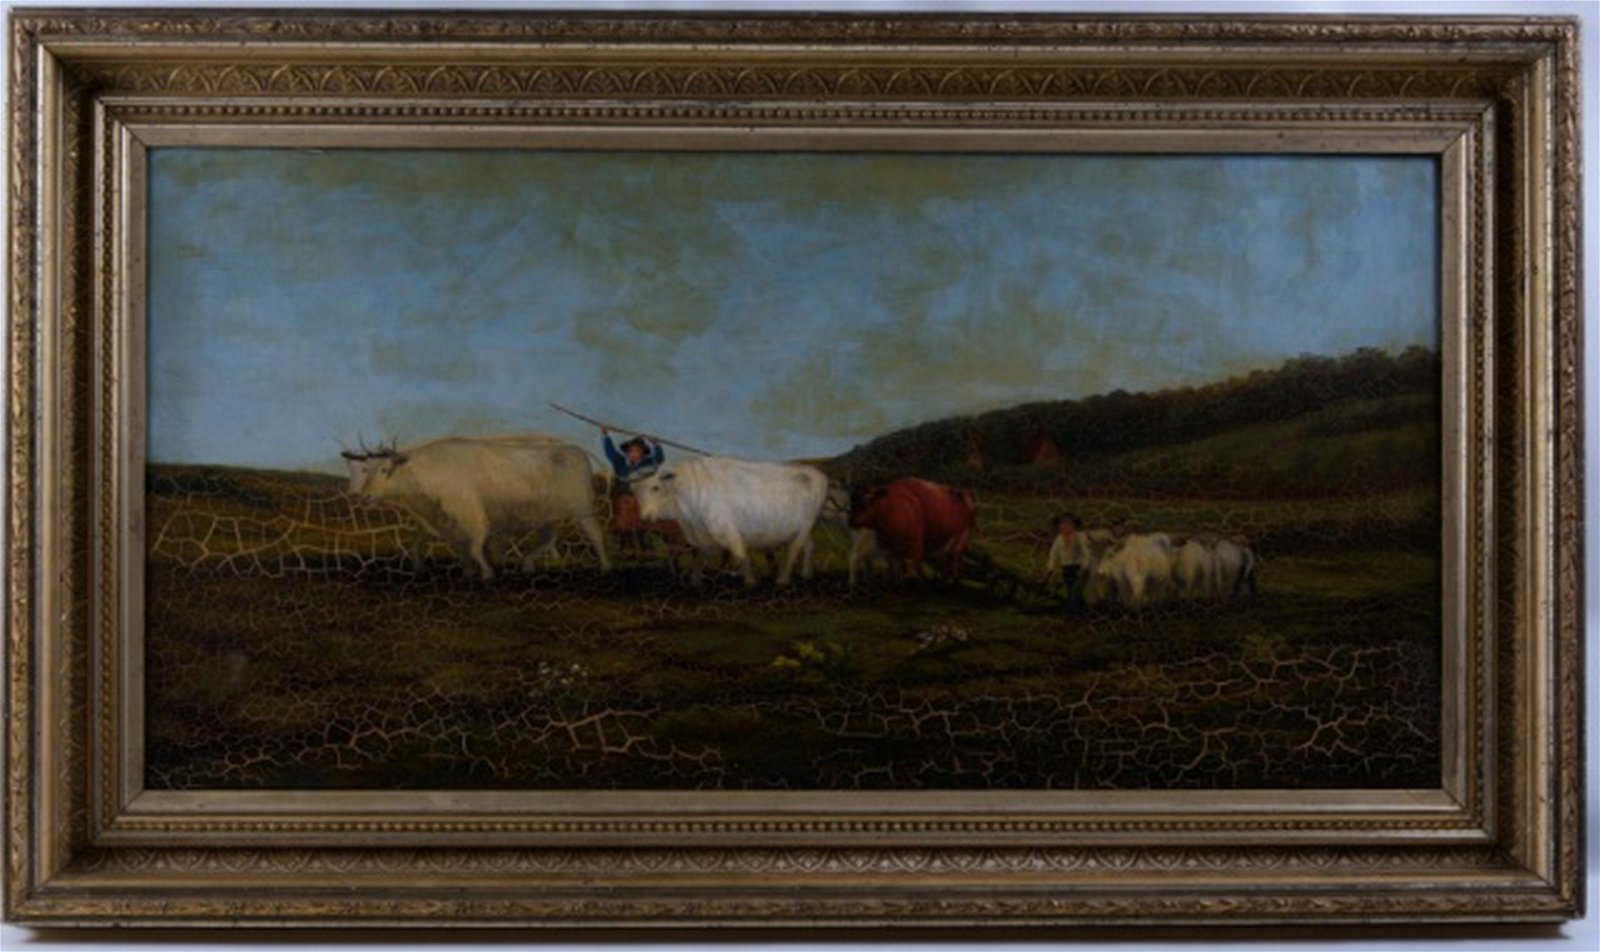 Oil on Canvas Landscape Painting, 19th C